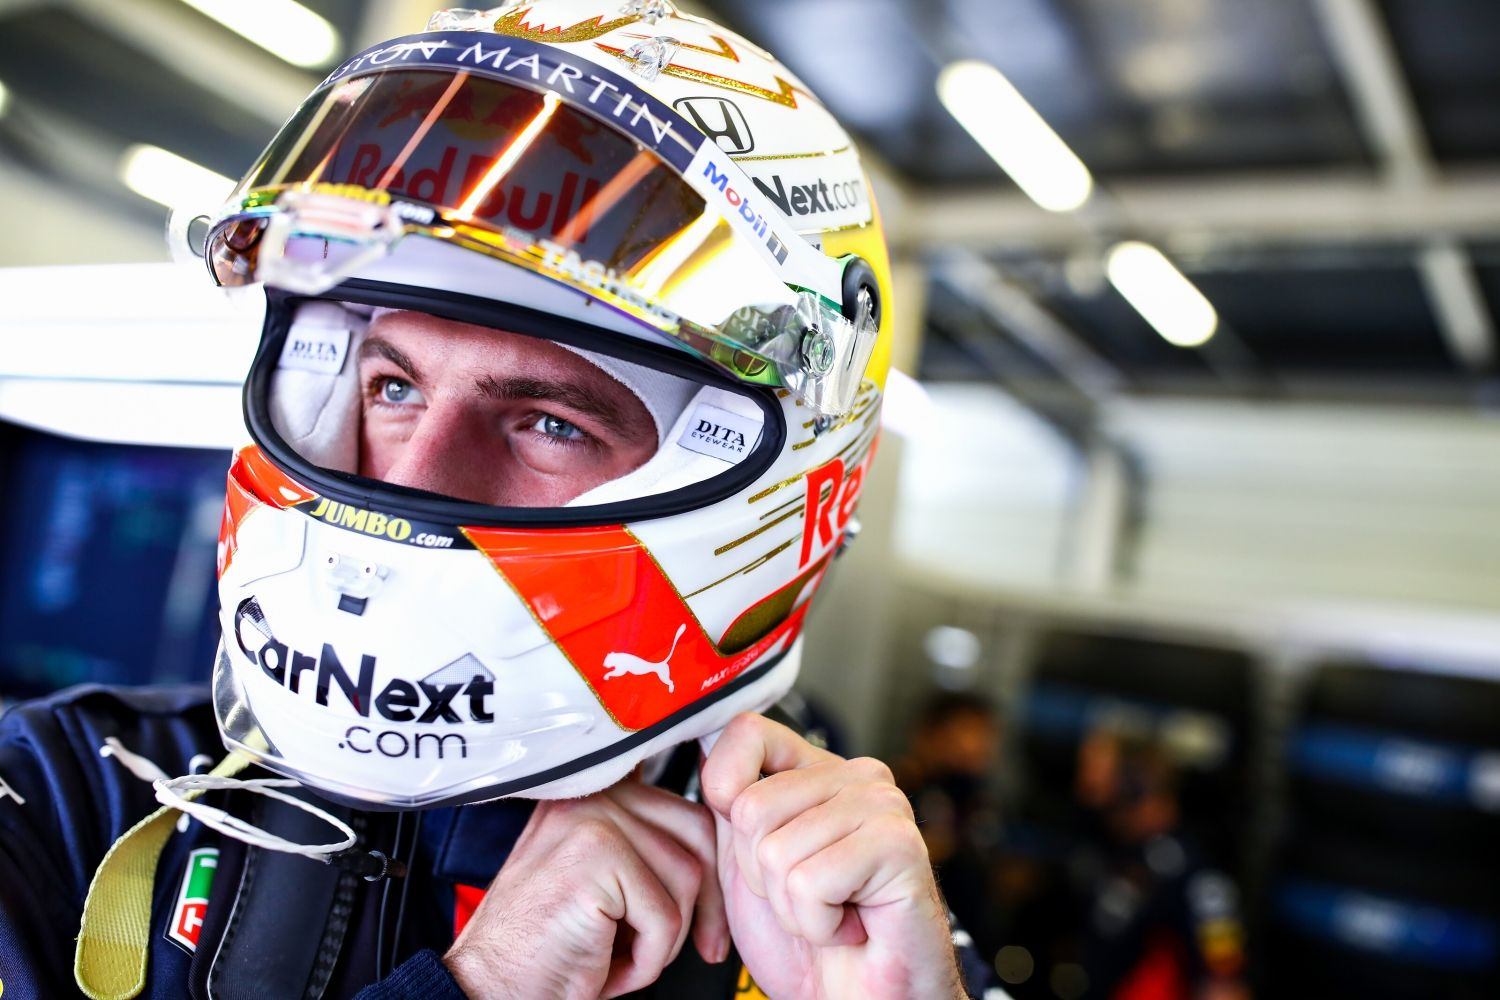 © Red Bull - Max Verstappen intouchable avant les qualifications